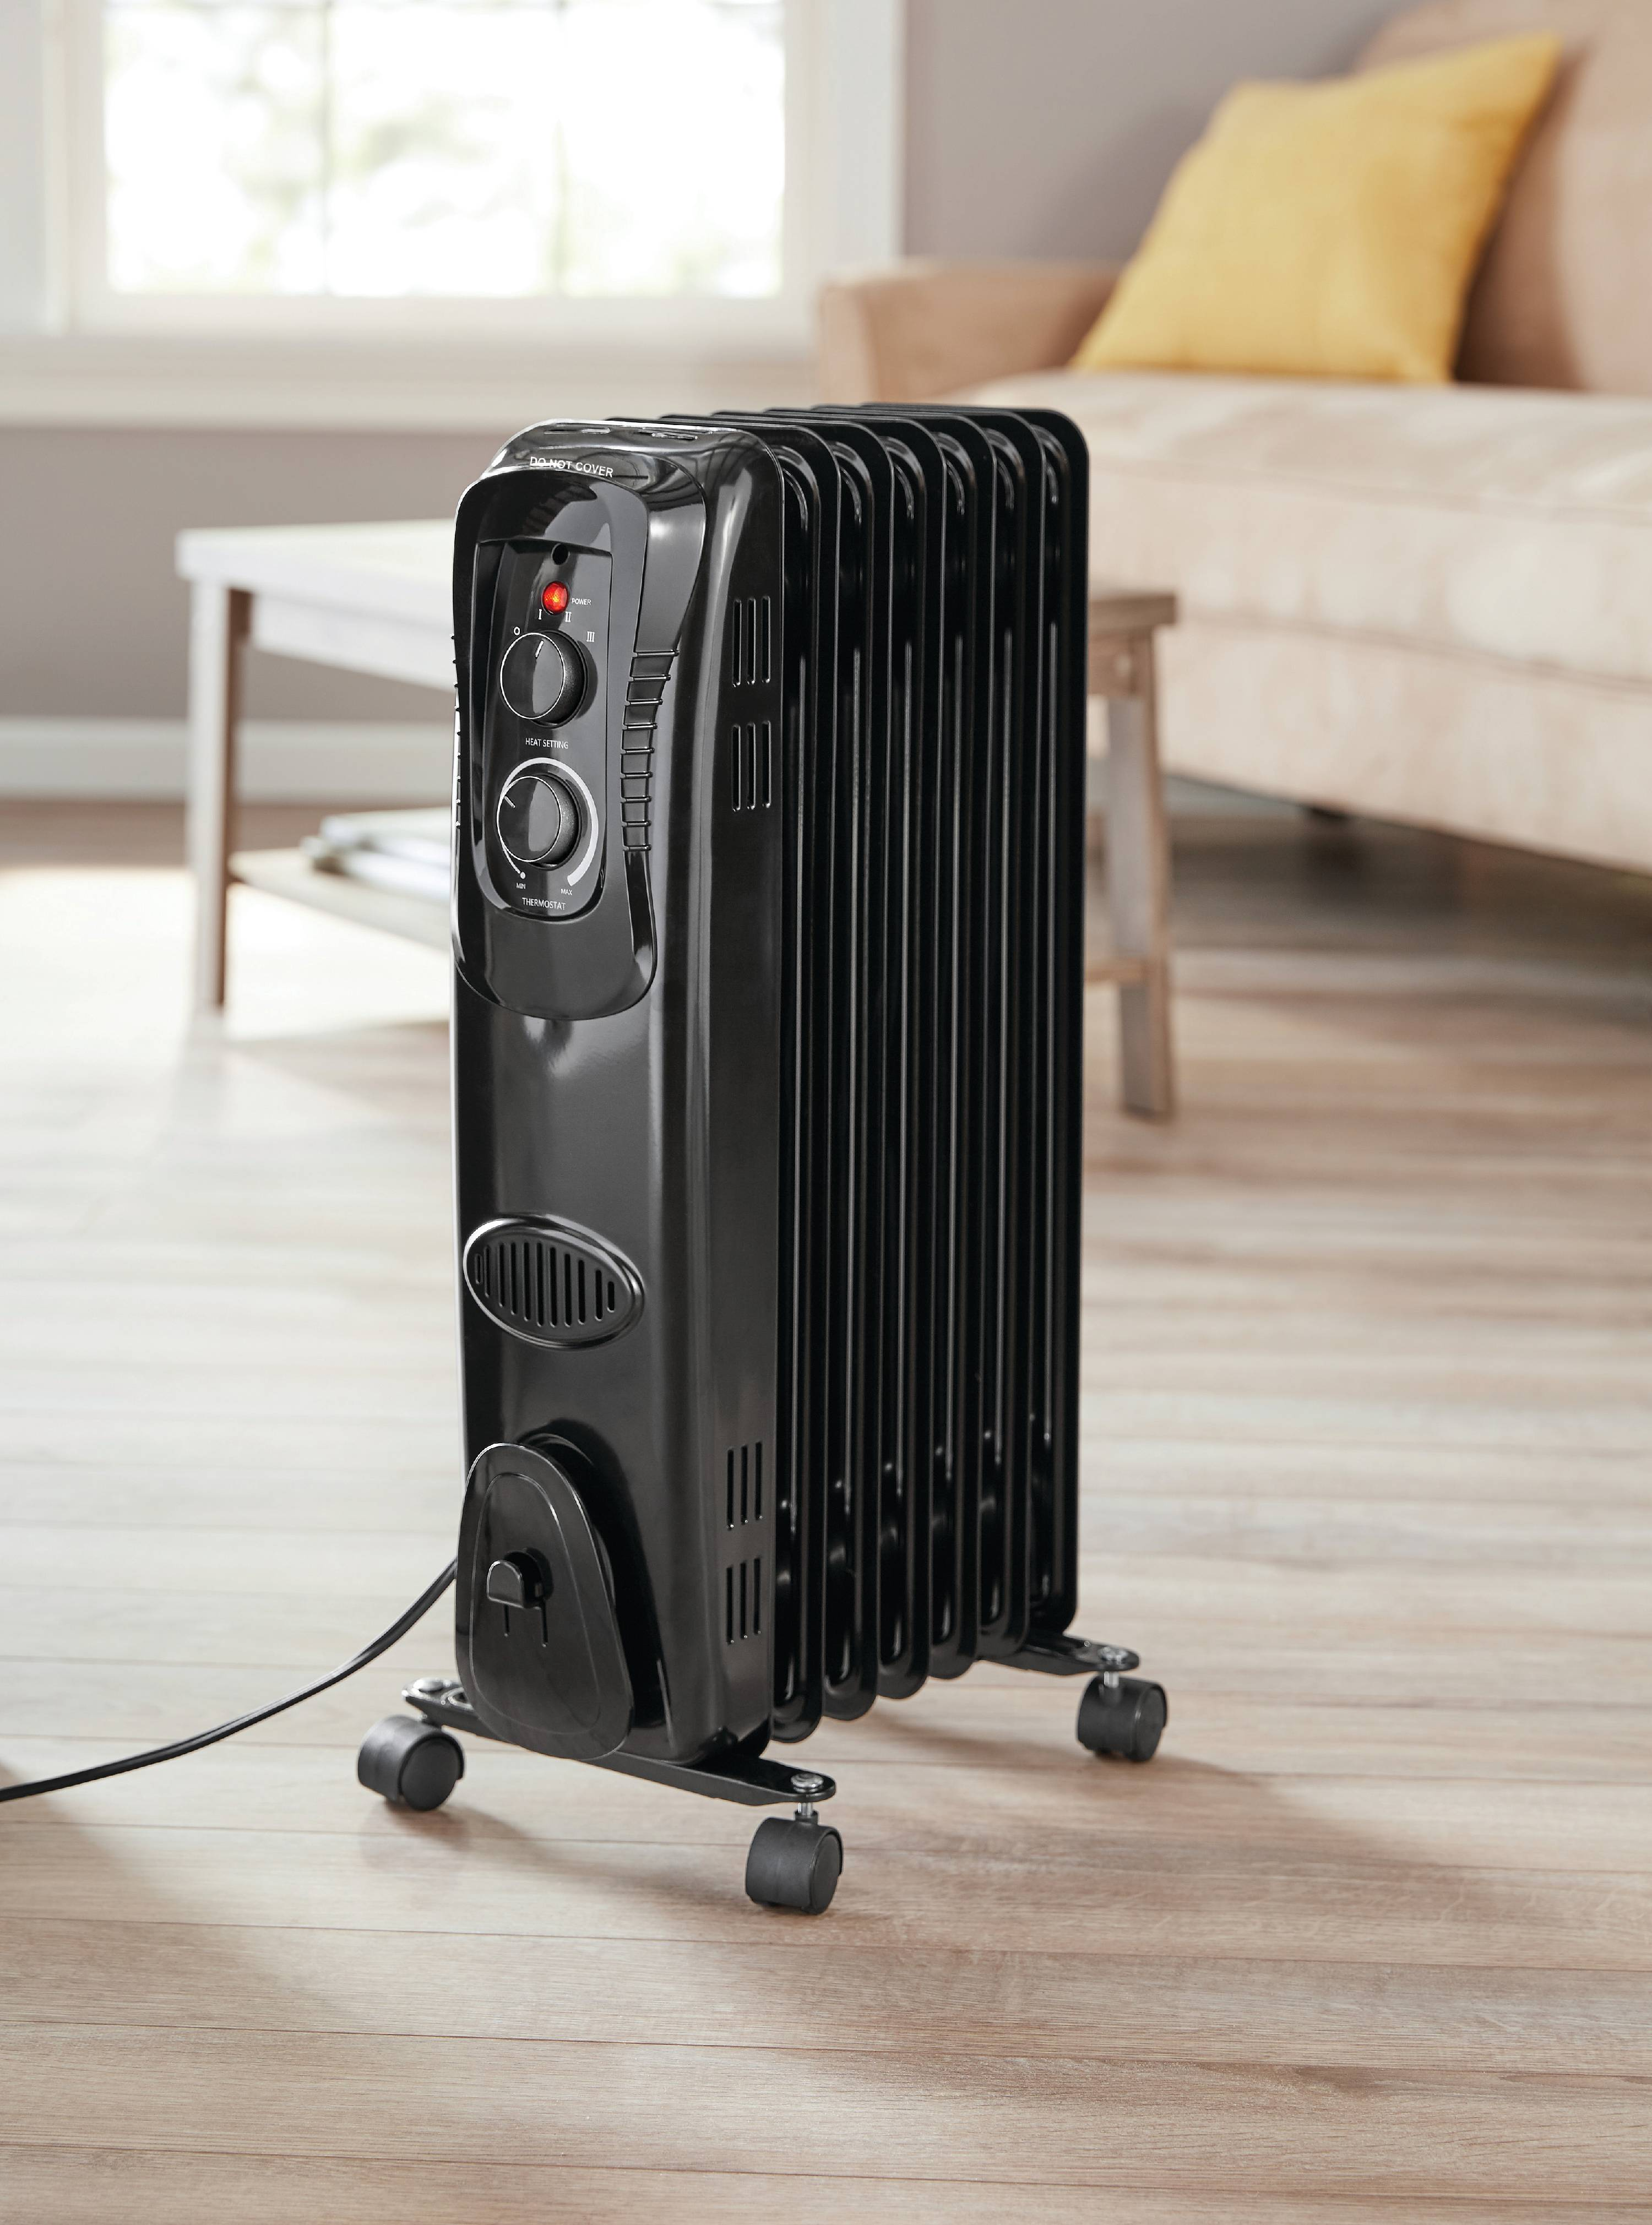 Ceramic Electric Heater Patton Wiring Diagram Master Blogs For An Radiator Model Most Efficient Oscillating Heaters